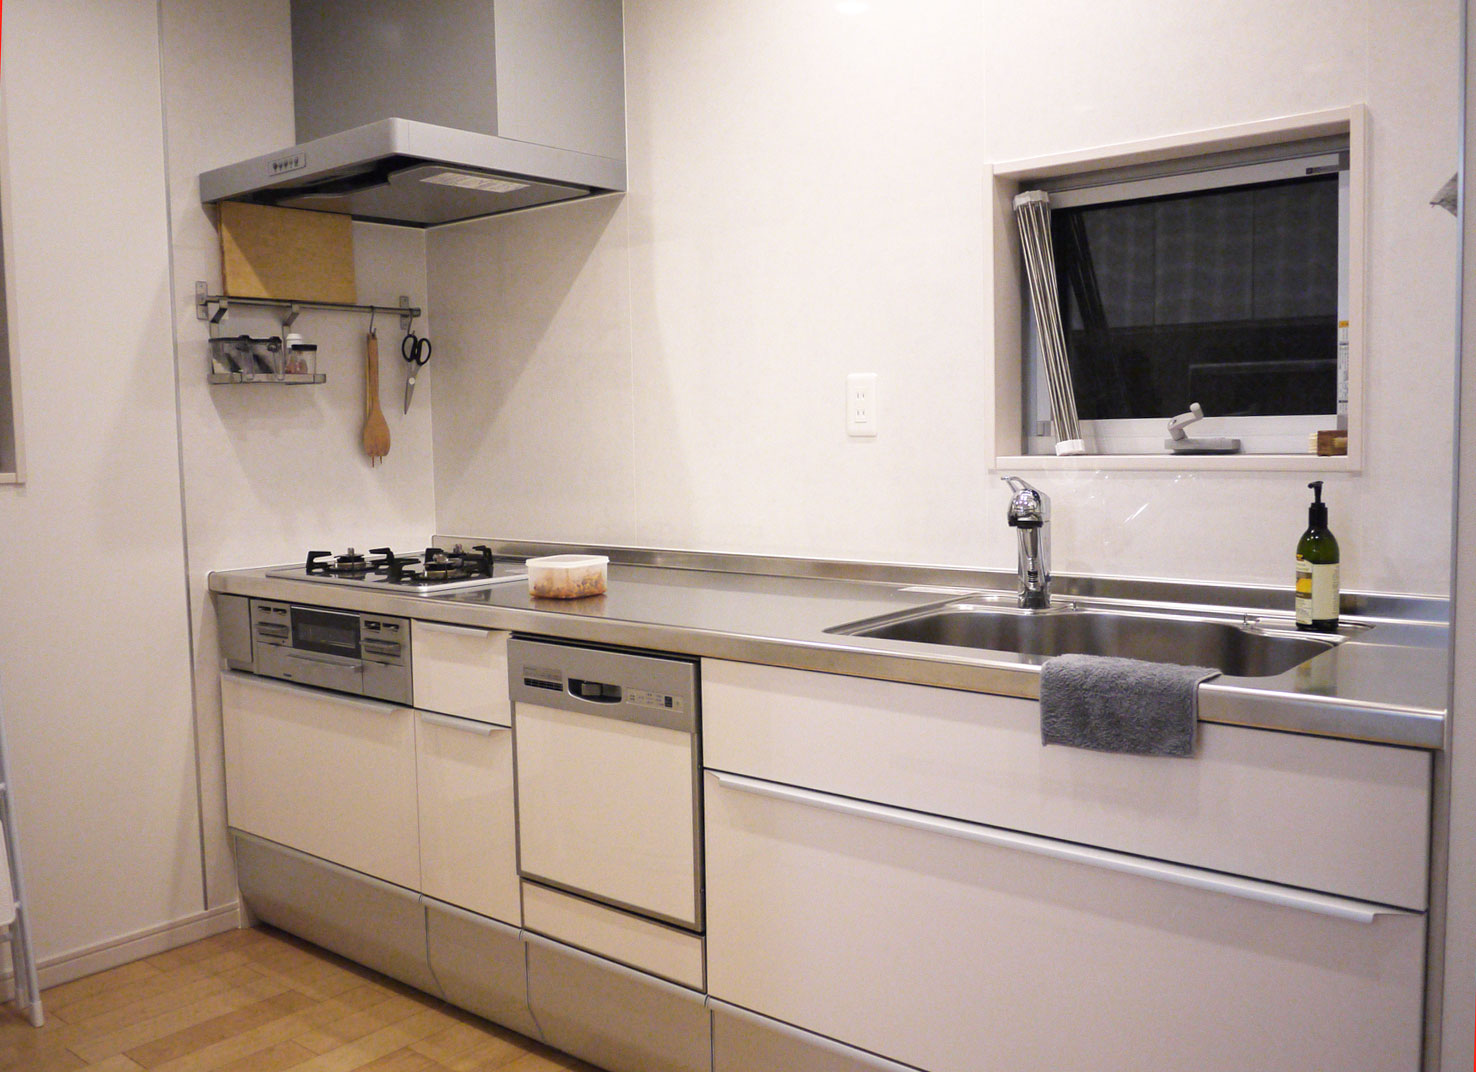 kitchen0502.jpg